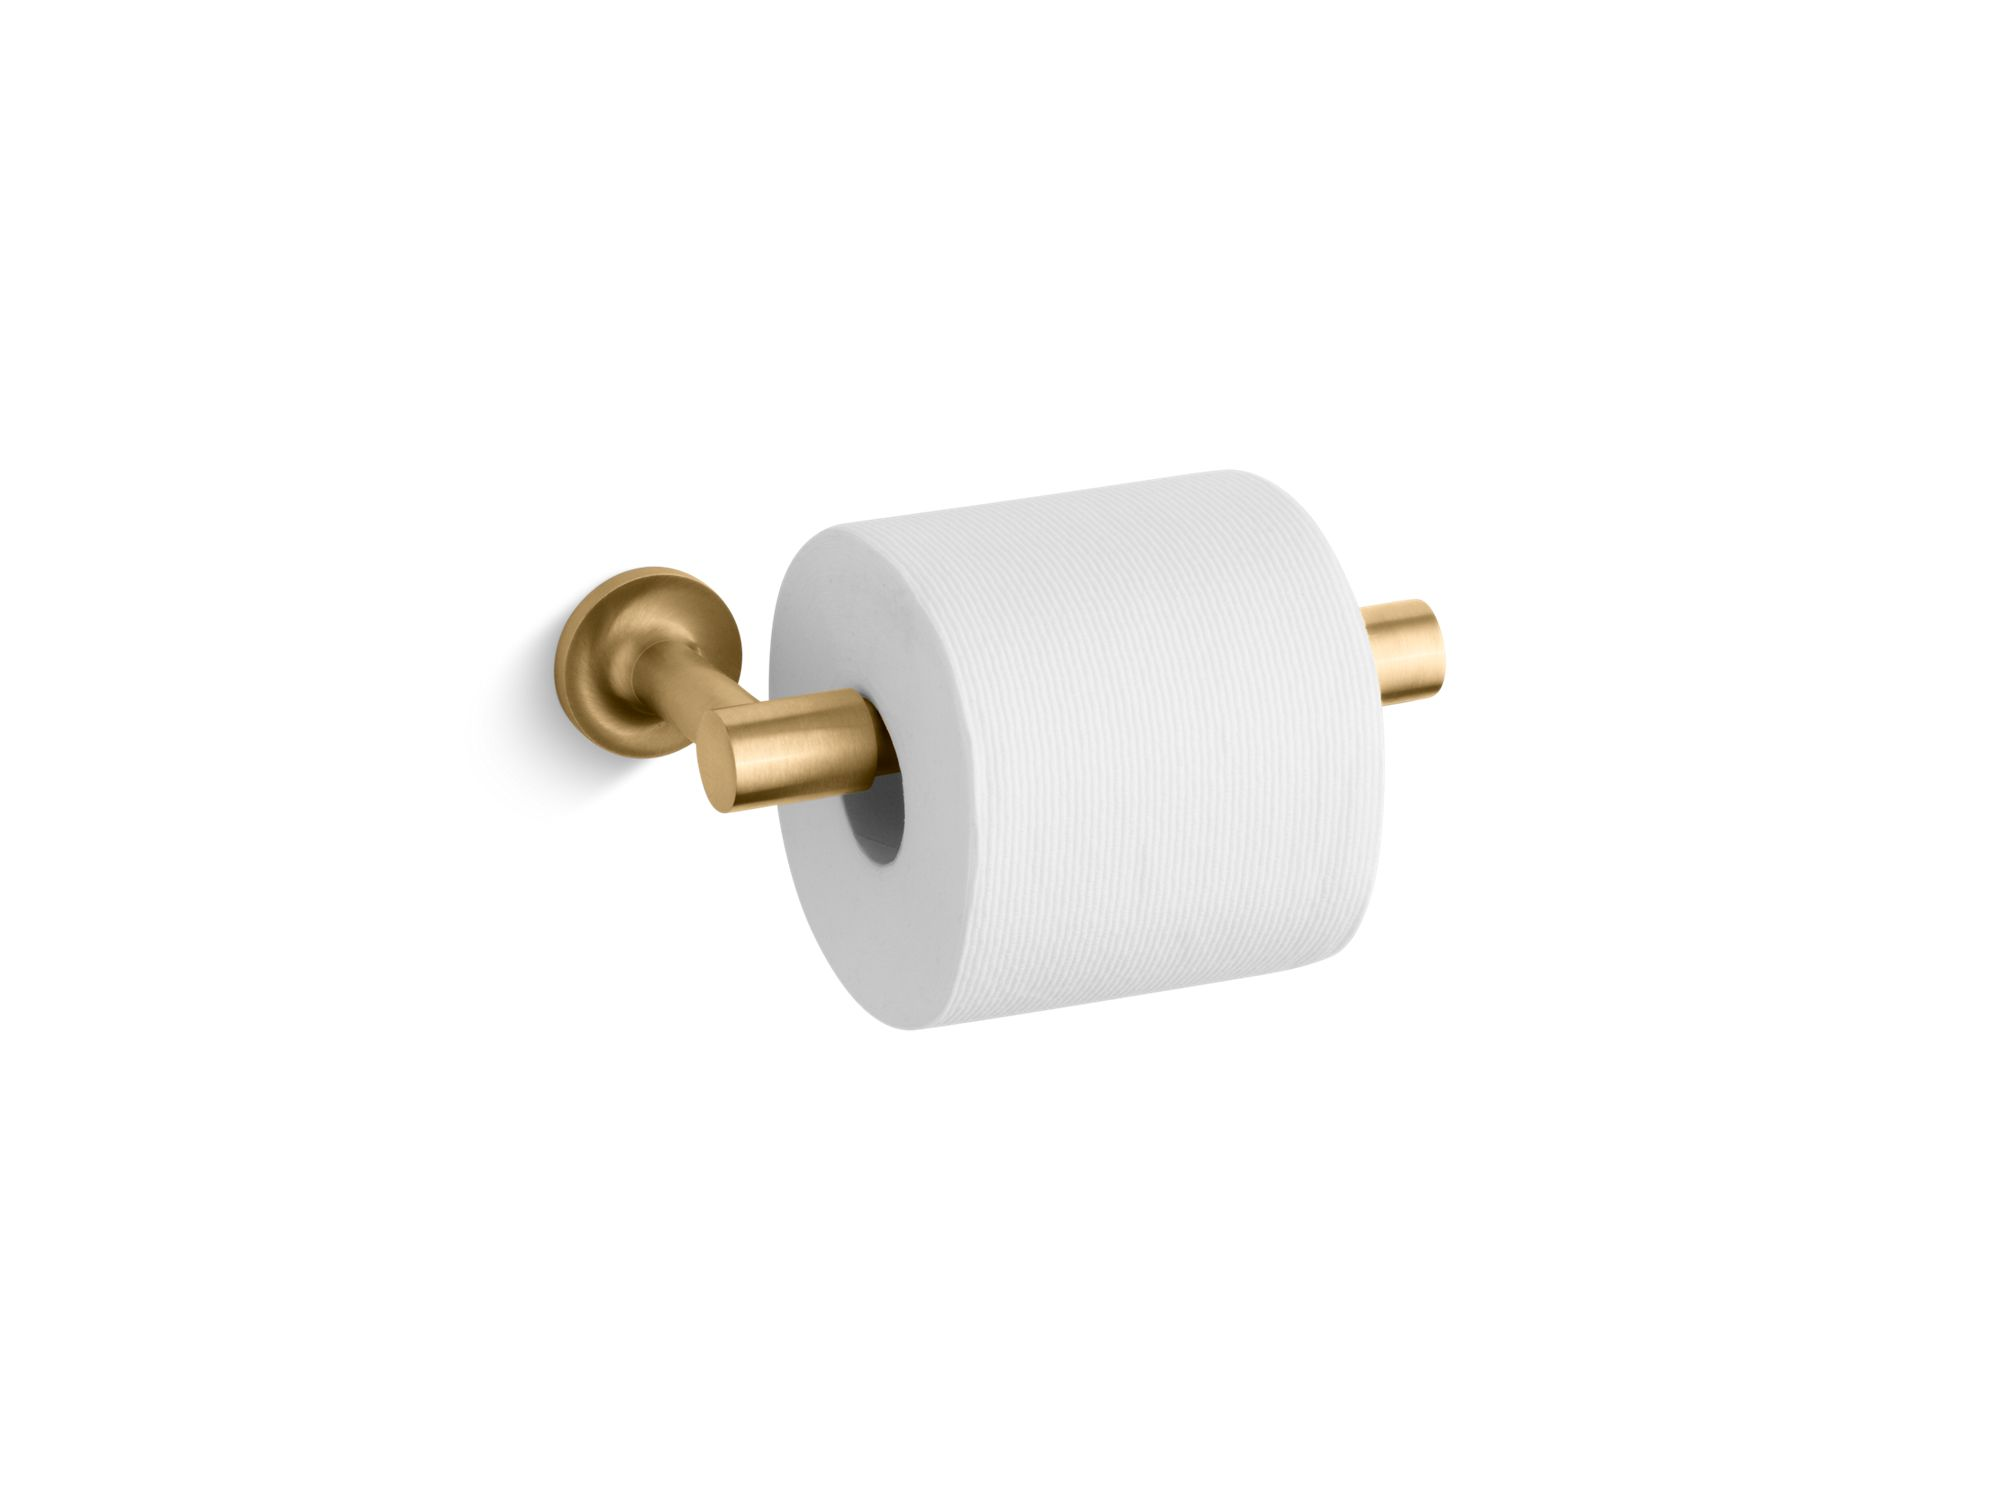 Kohler Purist Toilet Tissue Holder14377-BGD-14377-BGD